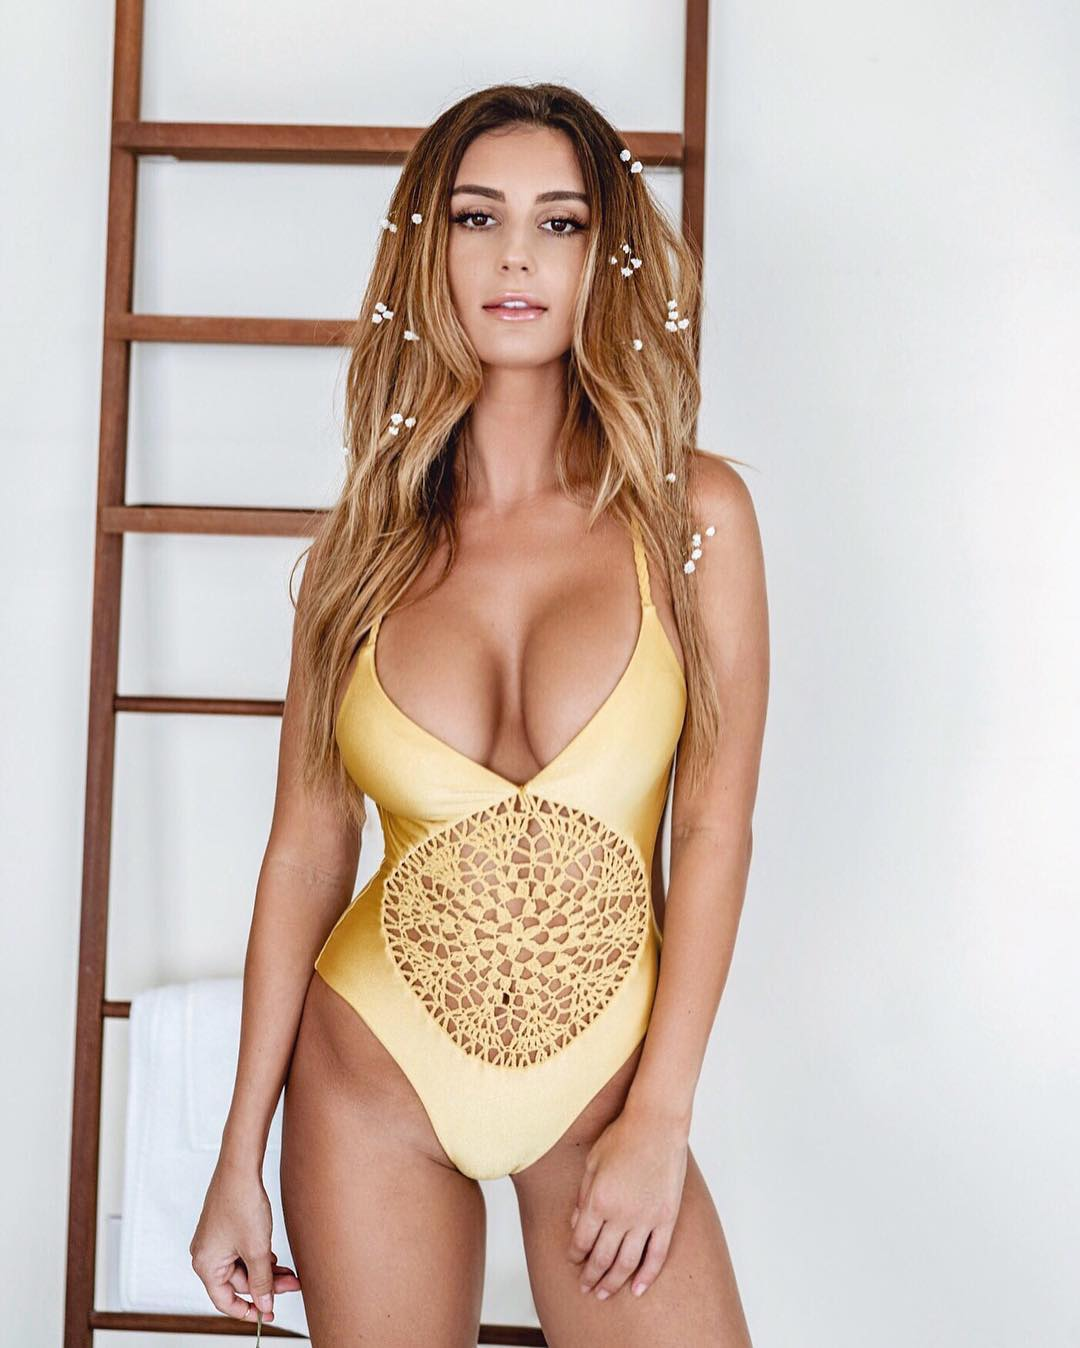 Celebrites Bianca Ghezzi naked (33 foto and video), Topless, Hot, Feet, braless 2015